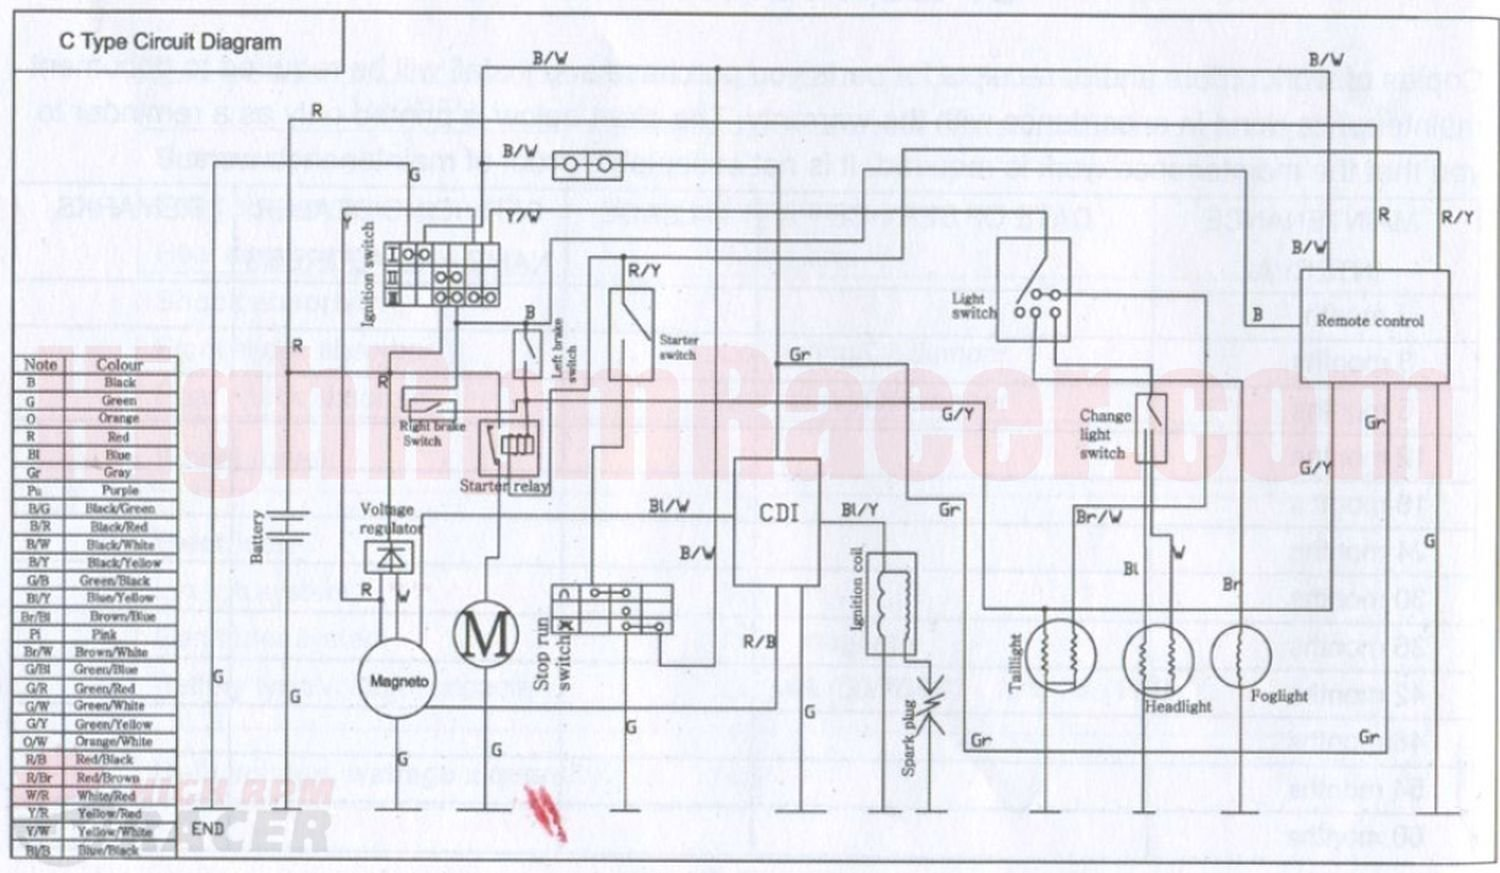 buyang50c_wd buyang atv 50 wiring diagram $0 00 kazuma meerkat 50 wiring diagram at bayanpartner.co